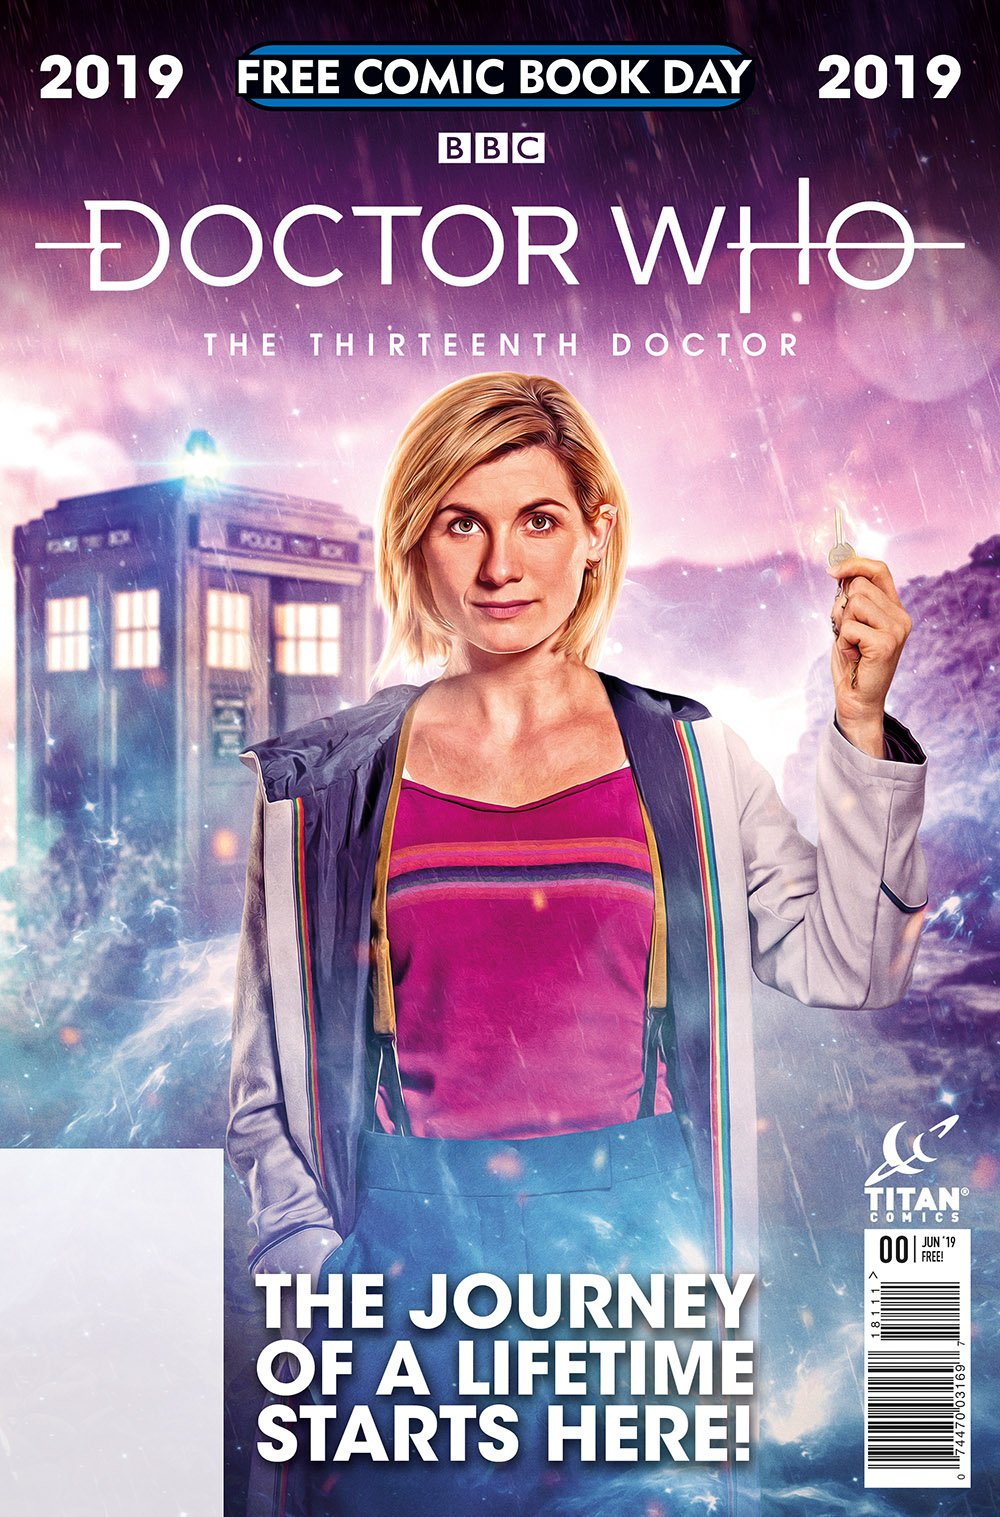 Dr Who Christmas Special 2019.Review Doctor Who The Thirteenth Doctor Free Comic Book